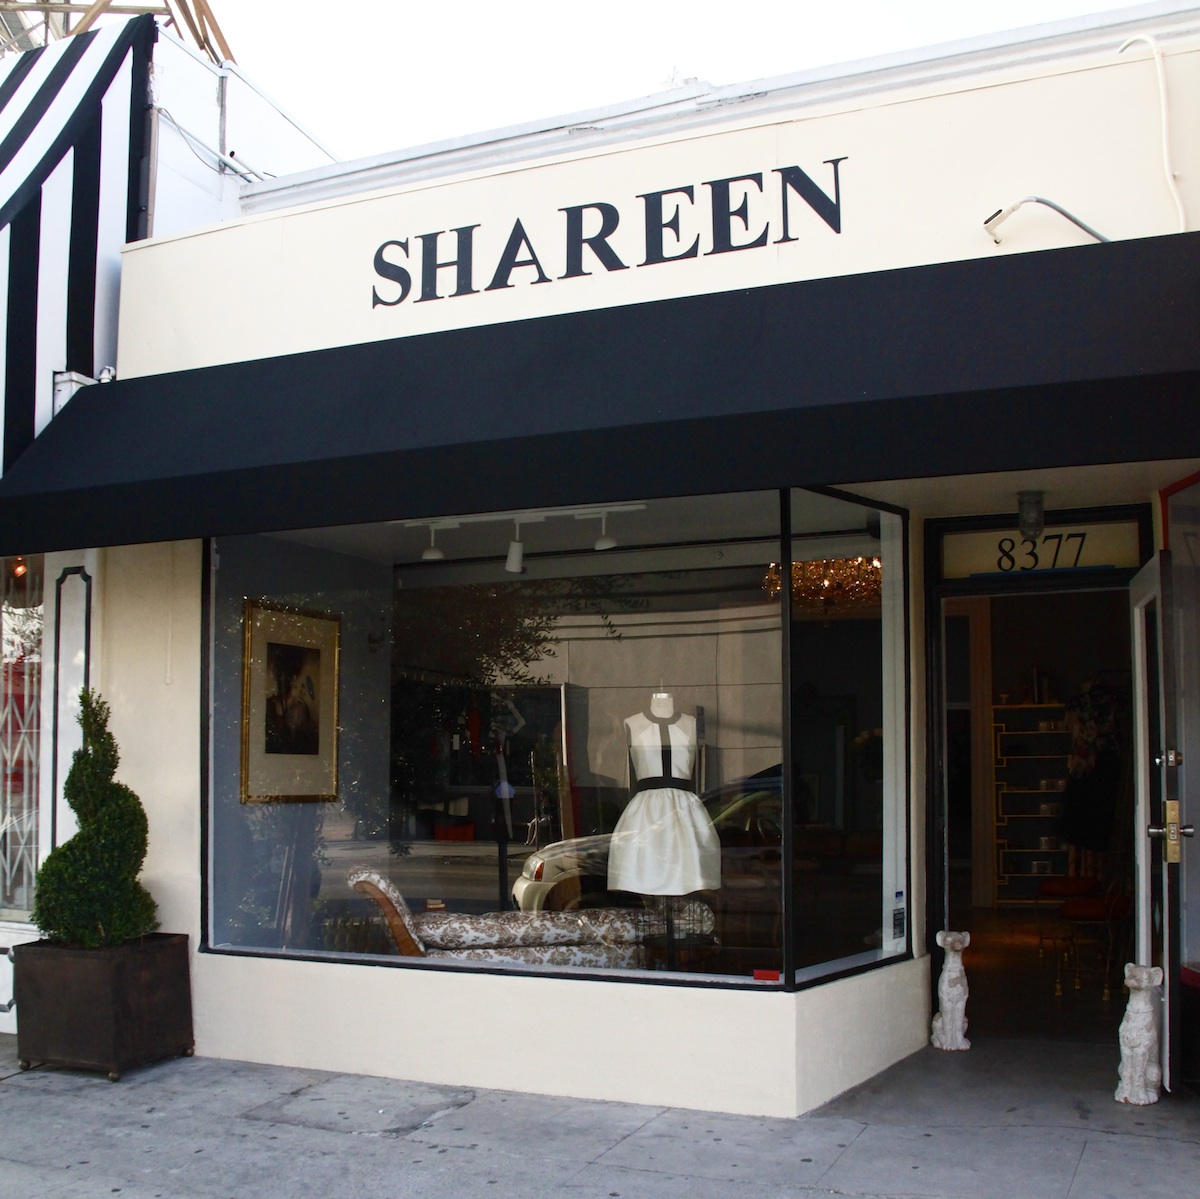 Shareen-West-3rd-Storefront-1